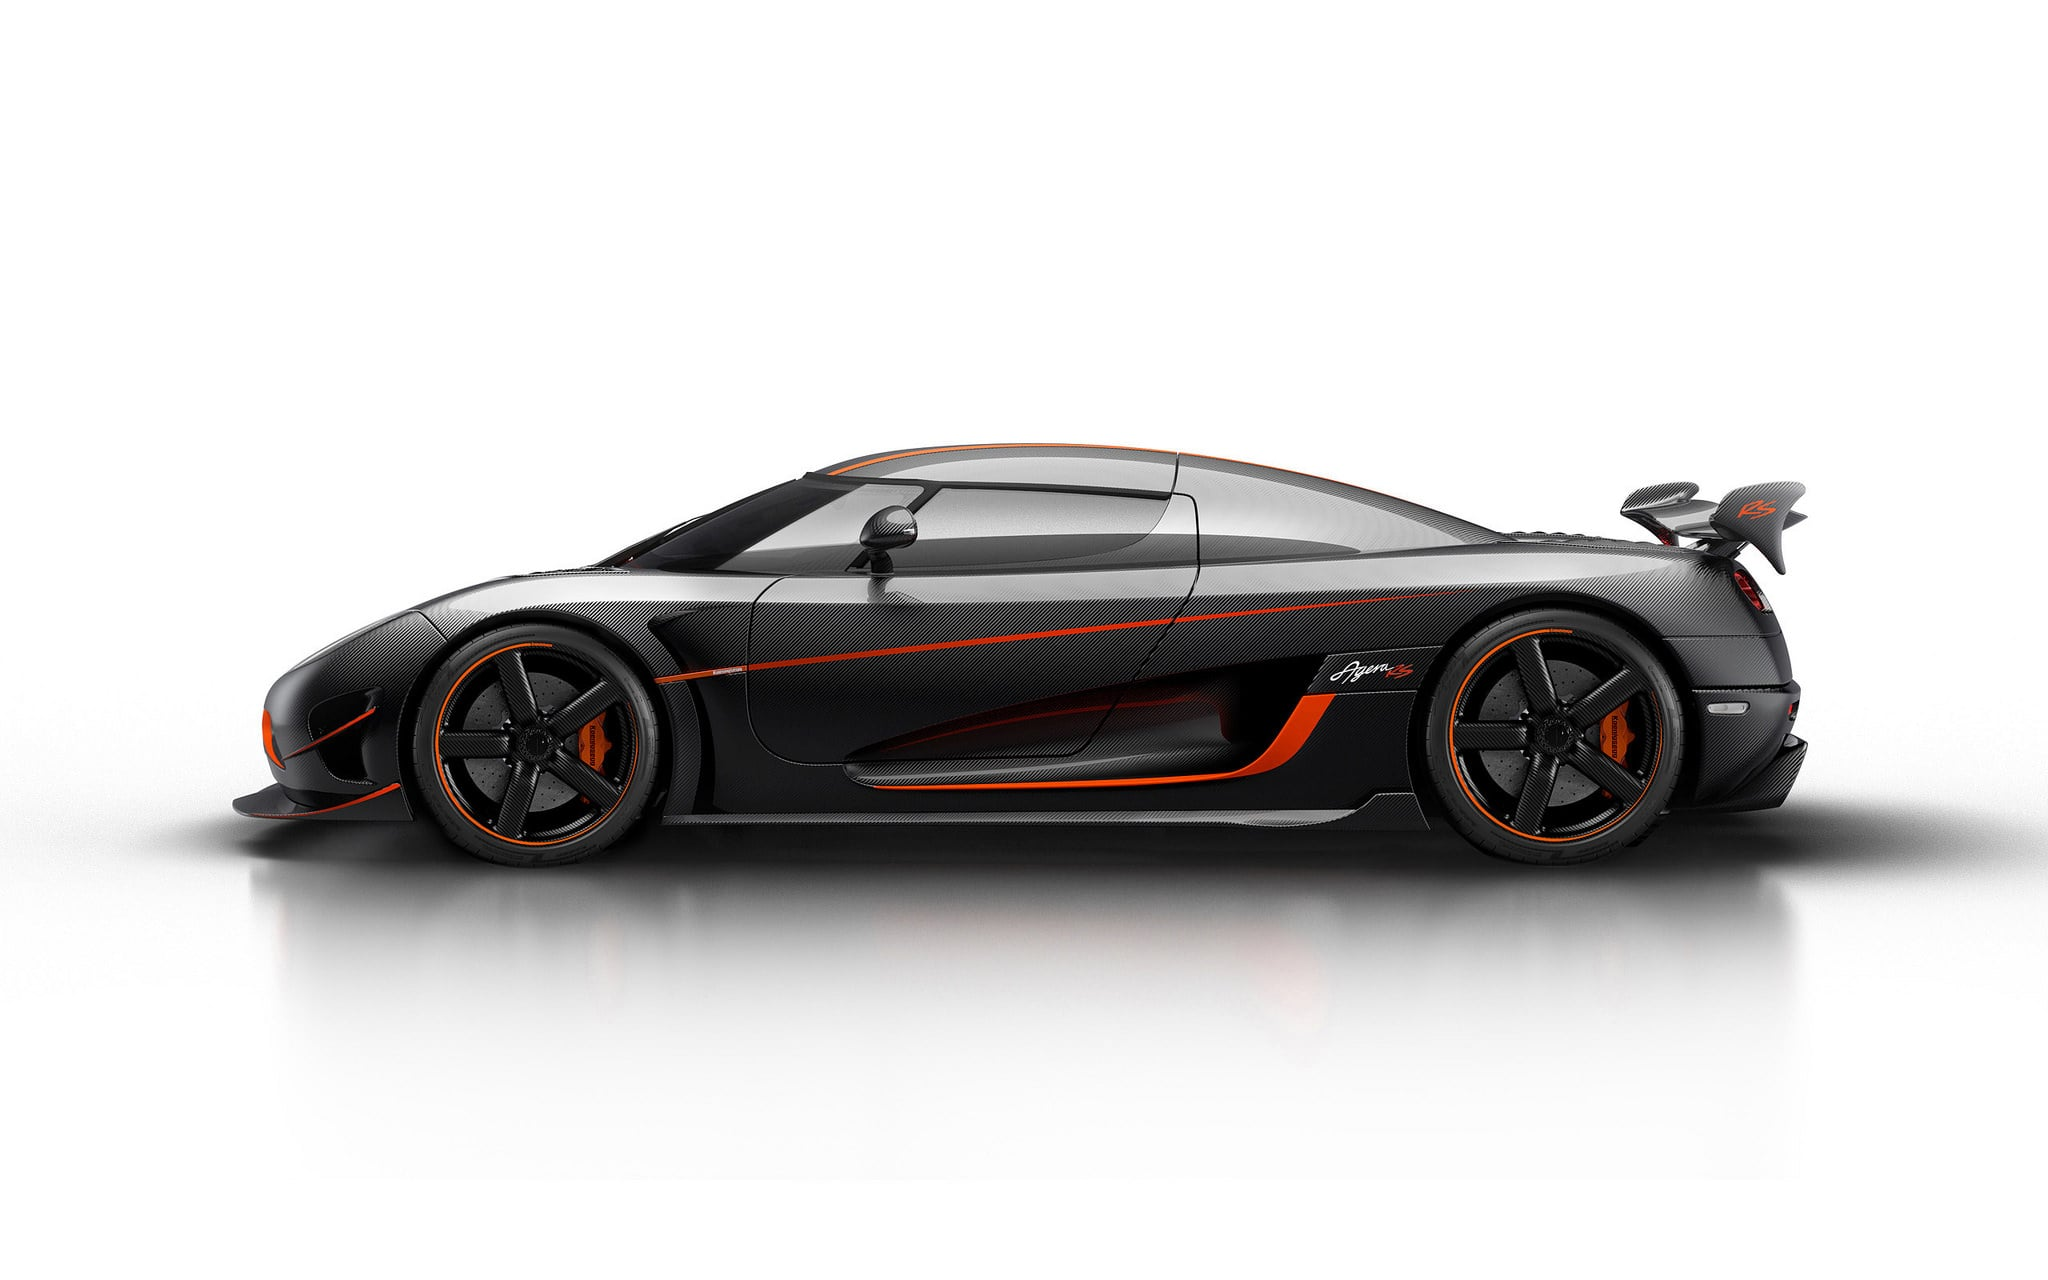 All Anime Wallpaper Hd 2016 Koenigsegg Agera Rs Wallpapers Hd Download